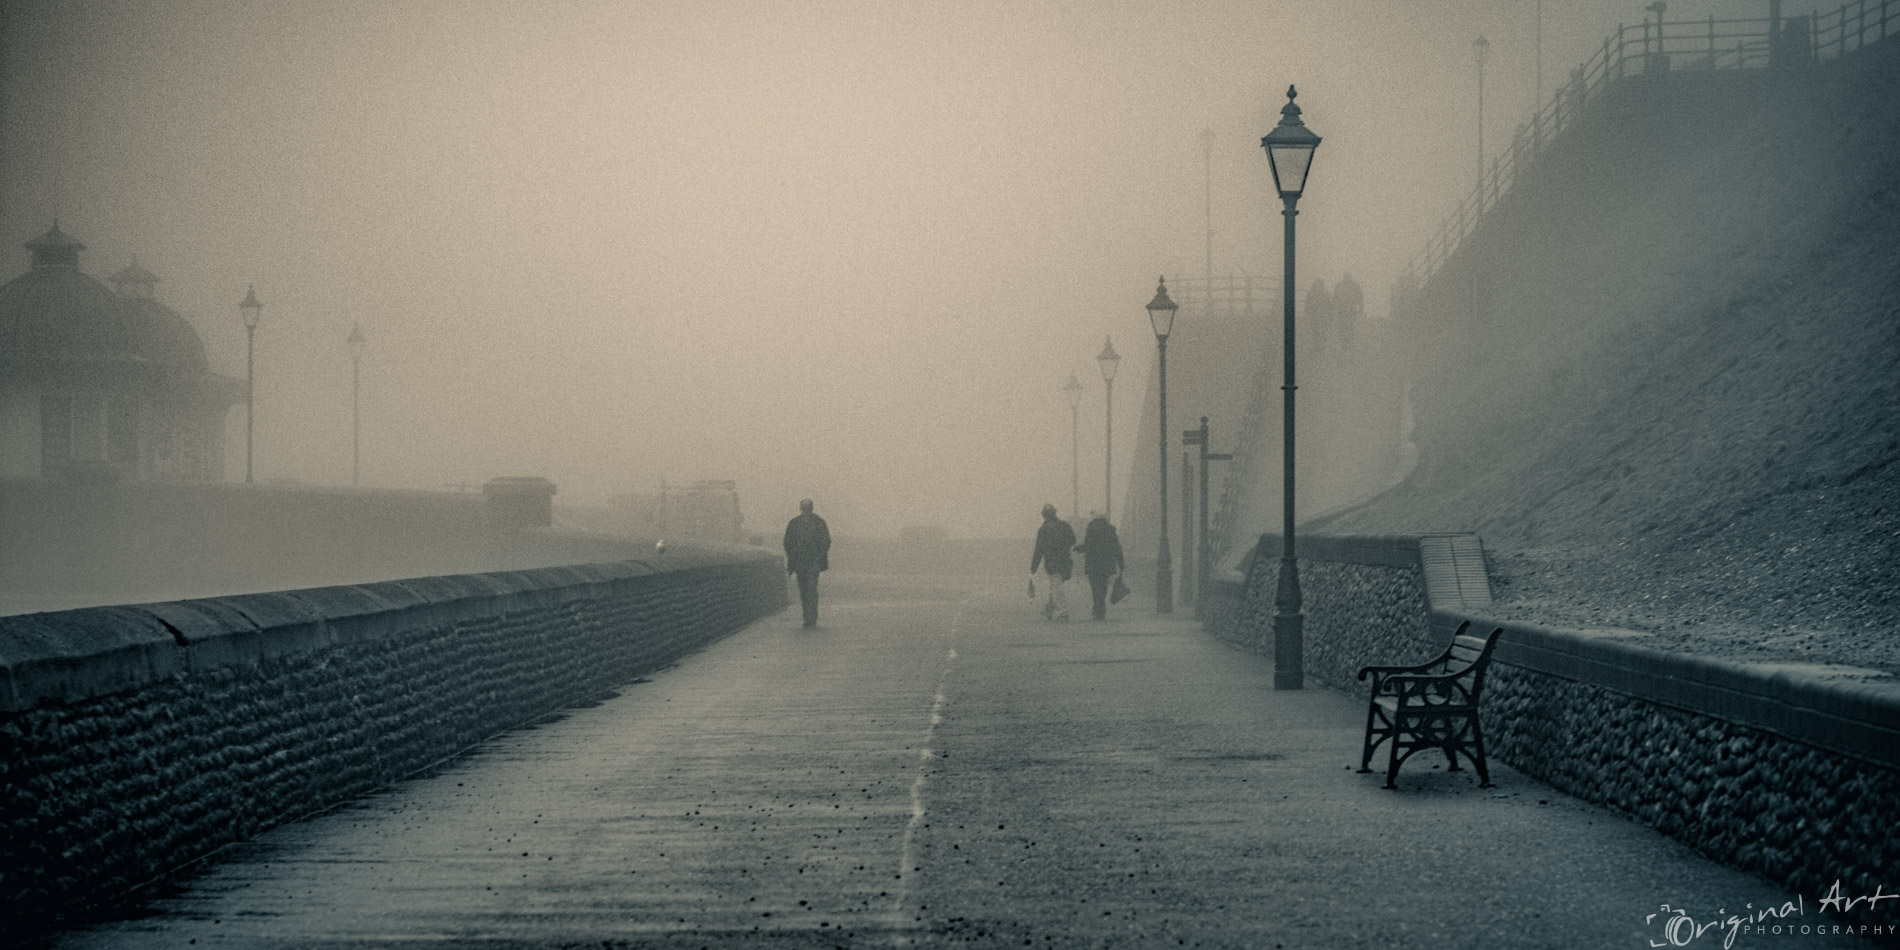 Cromer_on_a_foggy_day-3.jpg